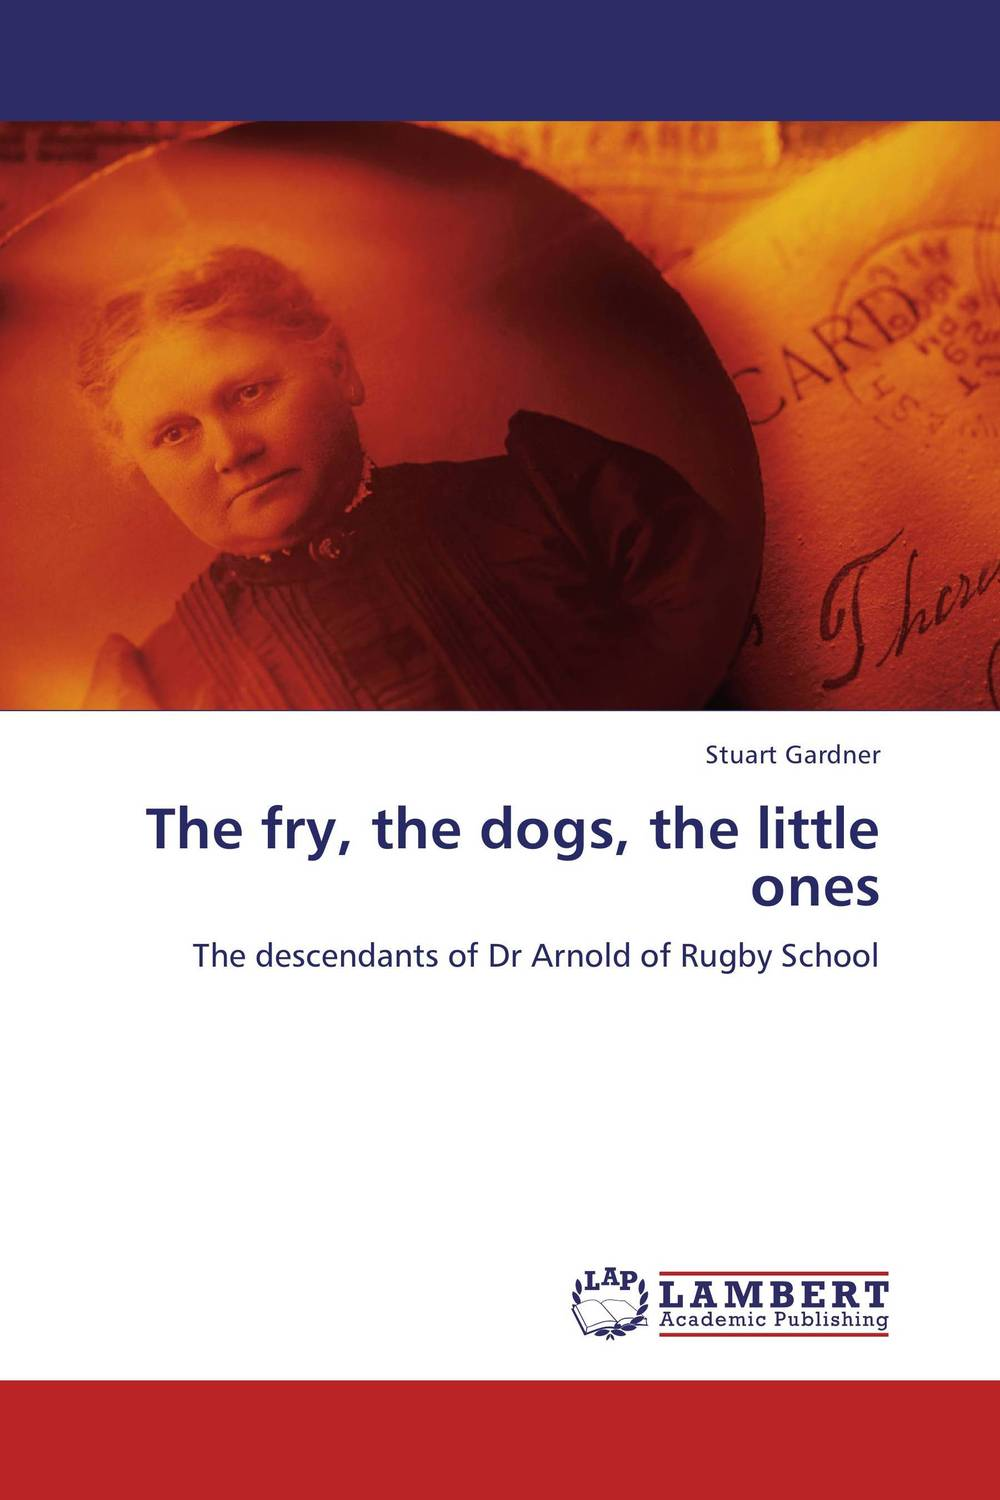 все цены на The fry, the dogs, the little ones онлайн